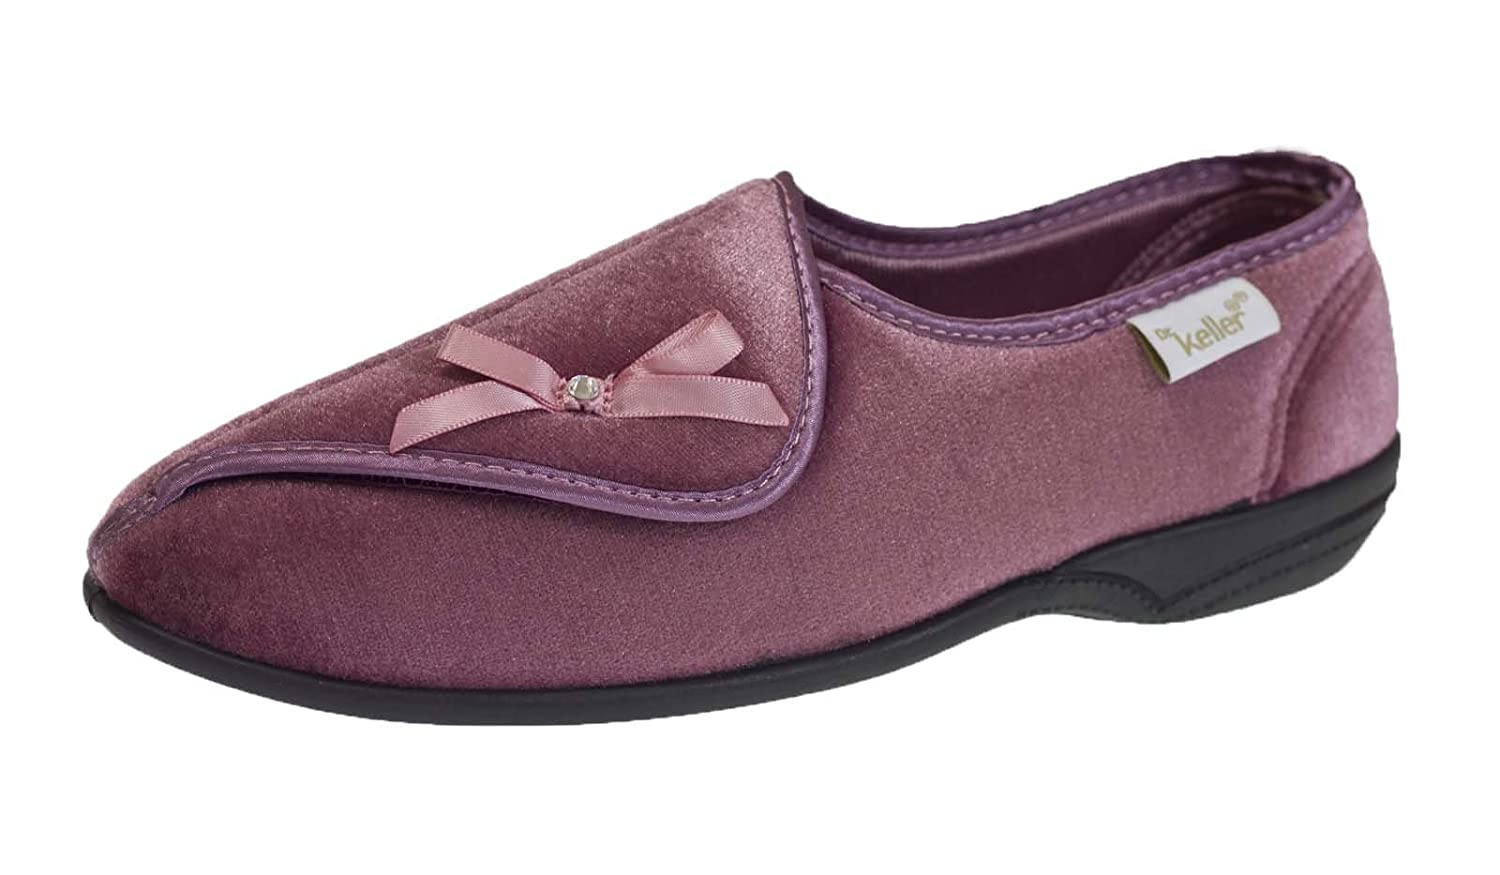 Cosies , Chaussons pour Cosies fille rose diamant , rose ad413bf - boatplans.space